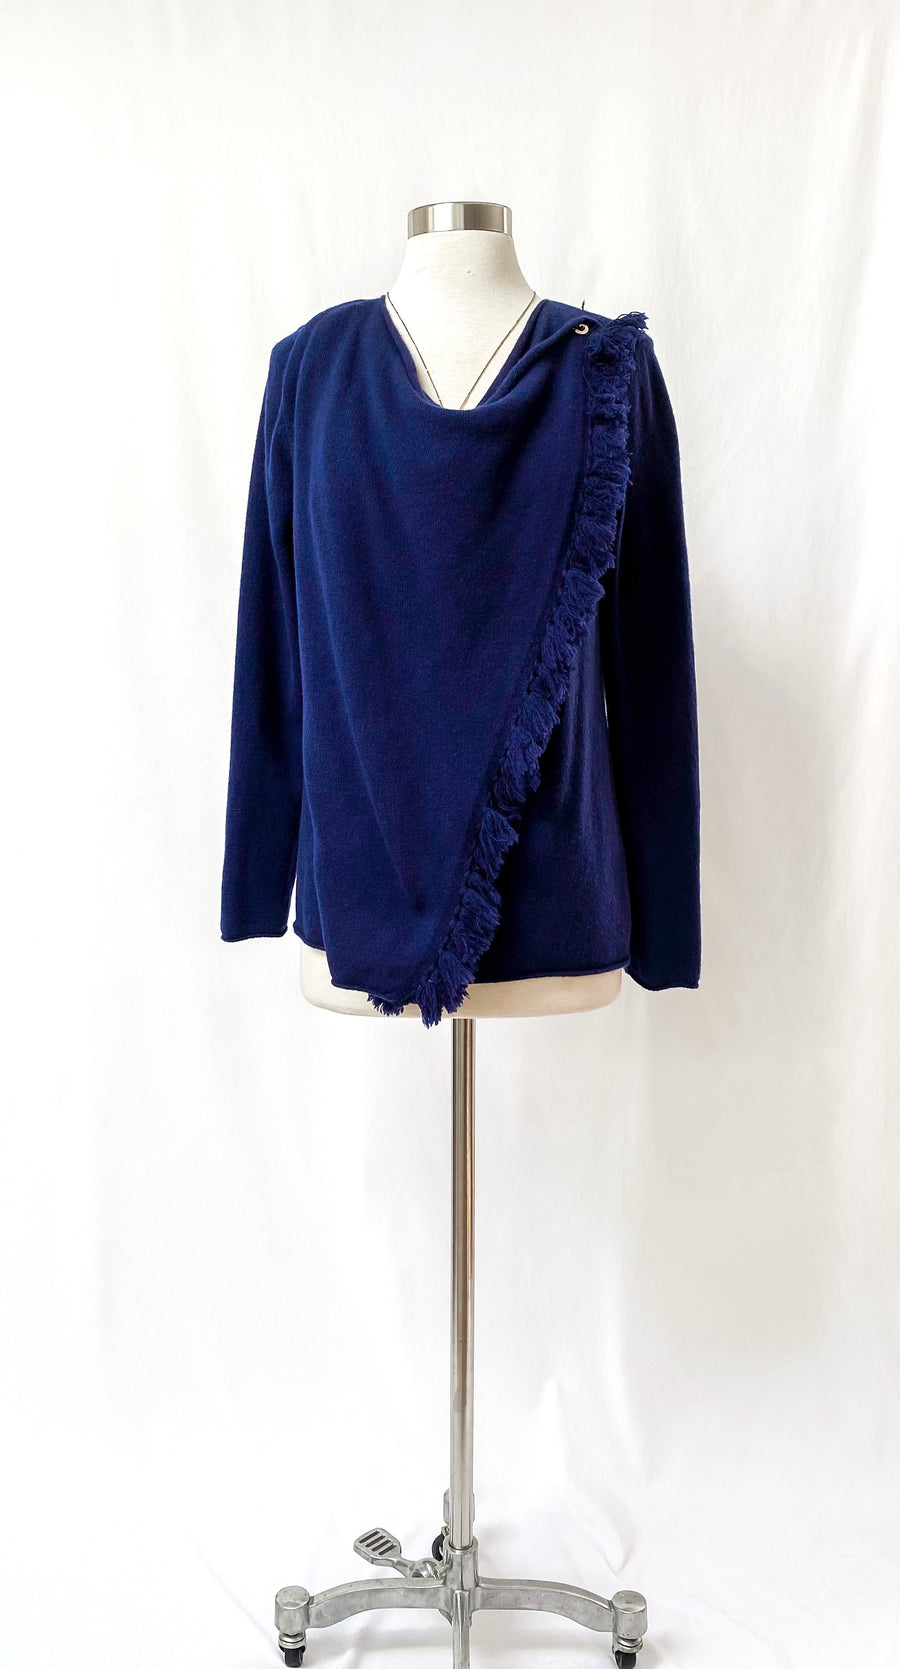 Lilly Pulitzer Navy Avenue Wrap Cashmere Cardigan (M)